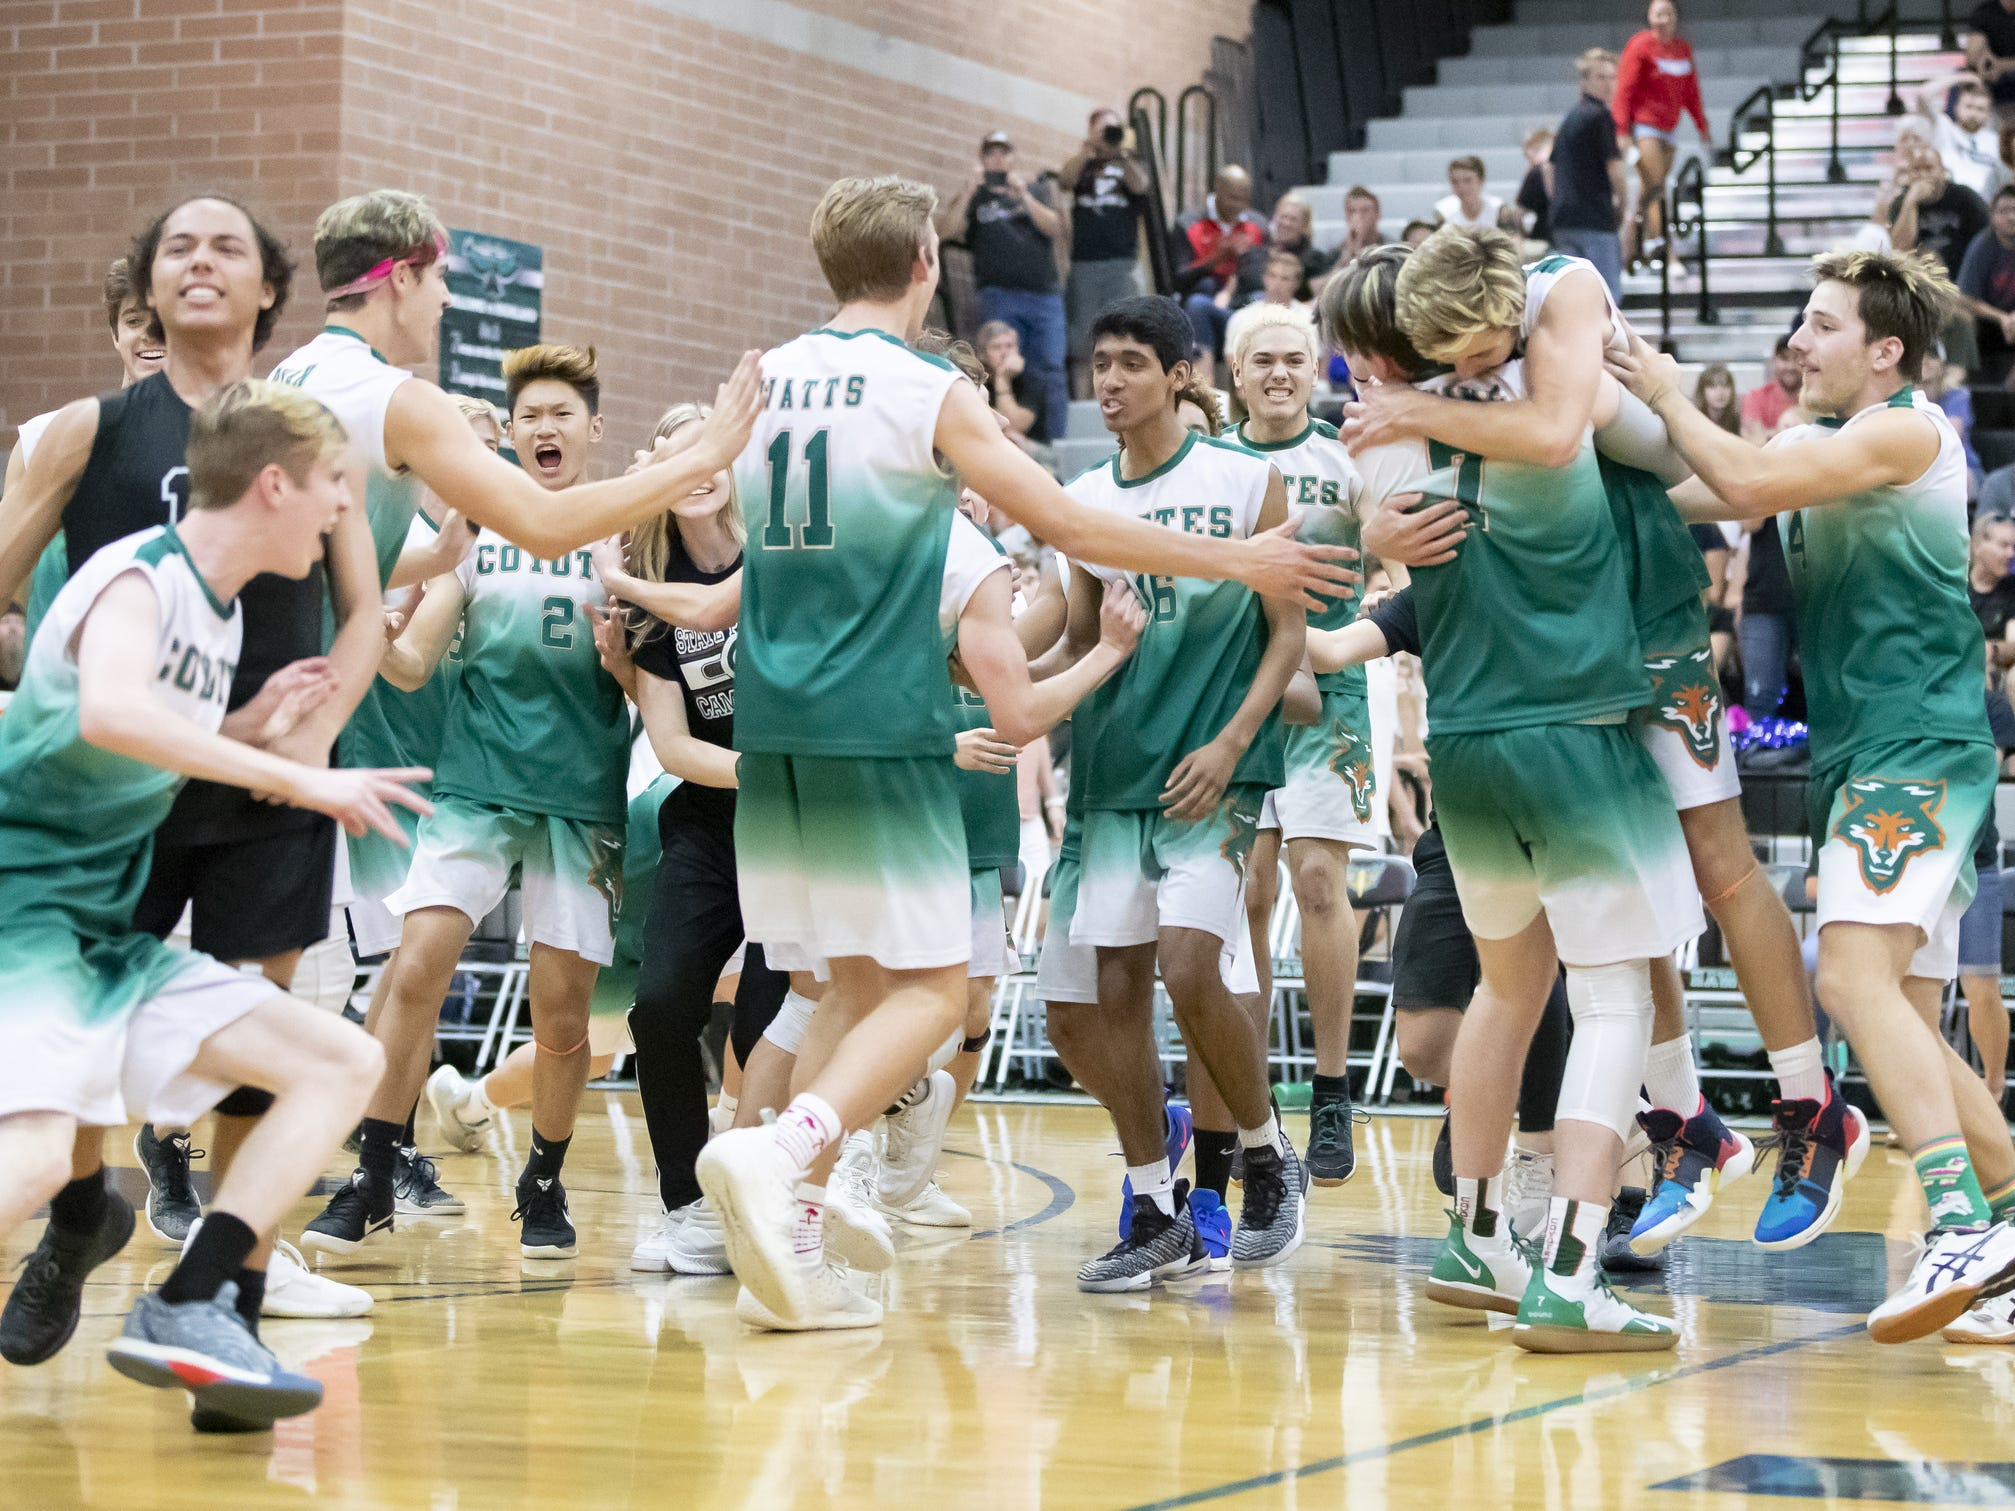 The Campo Verde Coyotes celebrate their 3-0 win against the Tucson Mountain View Mountain Lions in the 5A Boys Volleyball State Championships at Higley High School on Saturday, May 11, 2019 in Gilbert, Arizona.